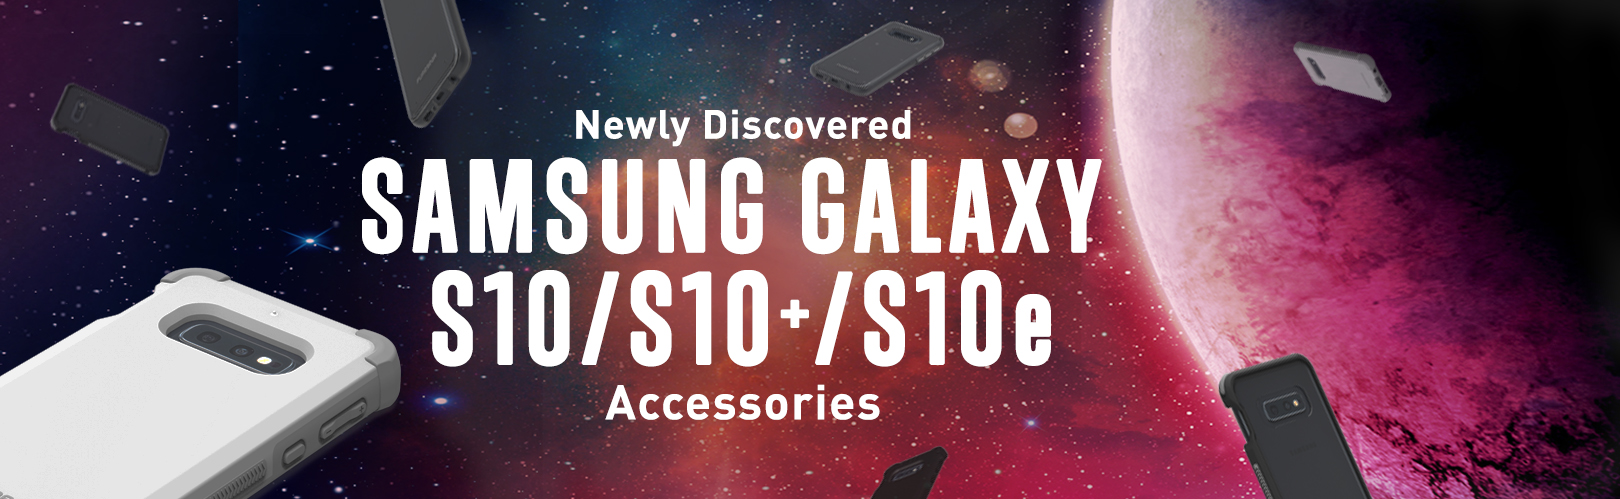 Samsung Galaxy S10 series Accessories